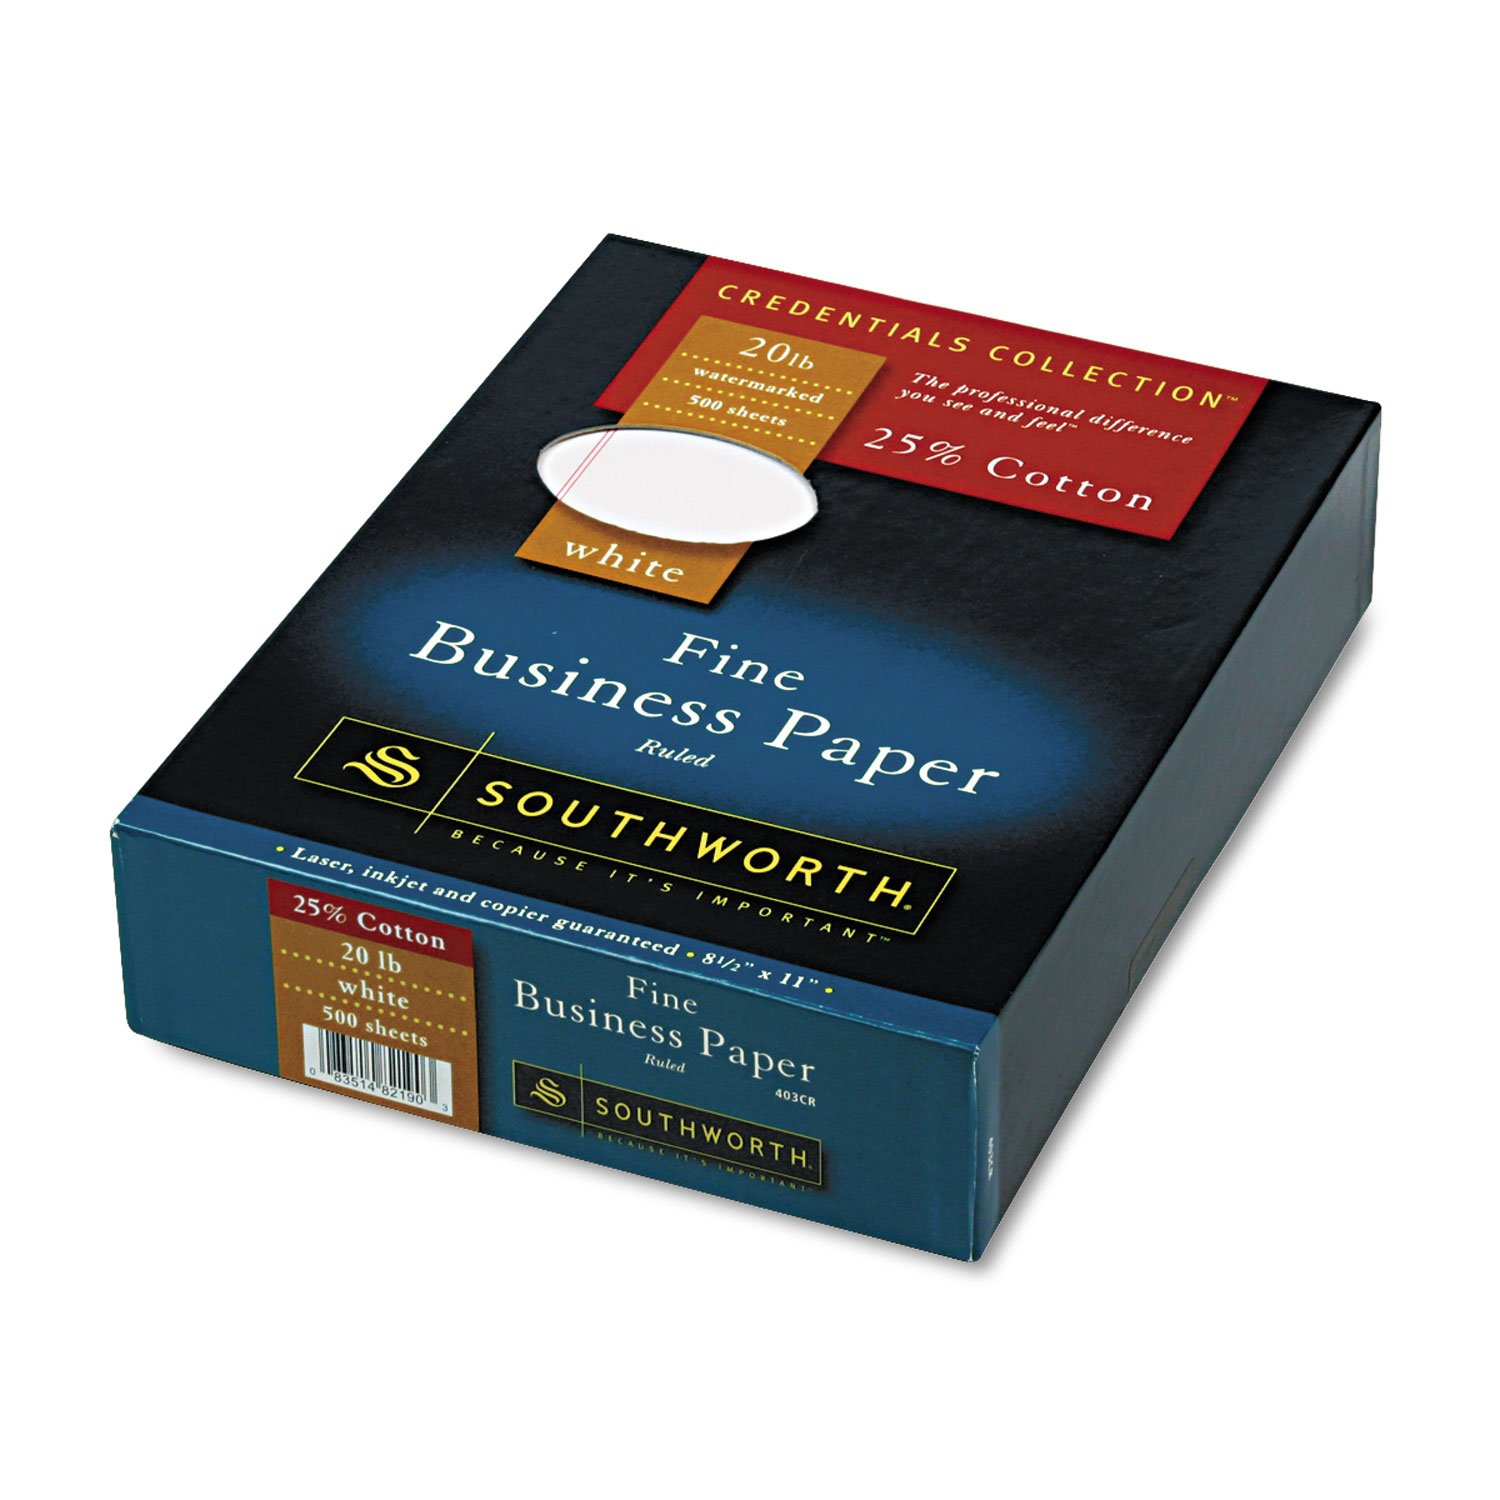 Southworth 403CR 25% Cotton Business Paper, 20 lbs, 8-1/2 x 11, White w/Red Rules, 500/Box by Southworth